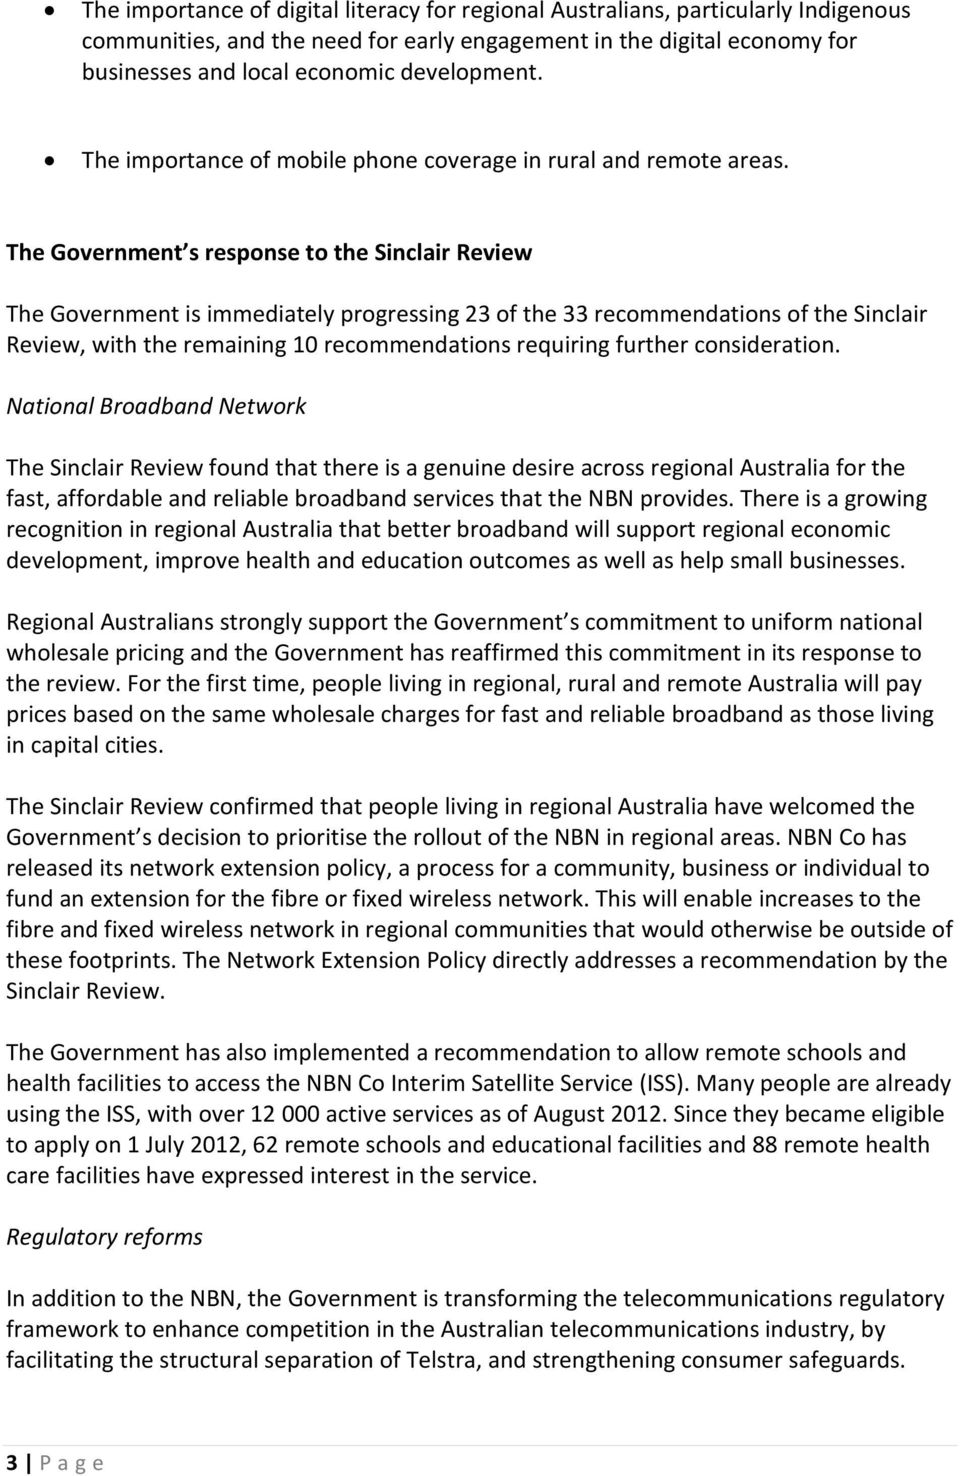 The Government s response to the Sinclair Review The Government is immediately progressing 23 of the 33 recommendations of the Sinclair Review, with the remaining 10 recommendations requiring further